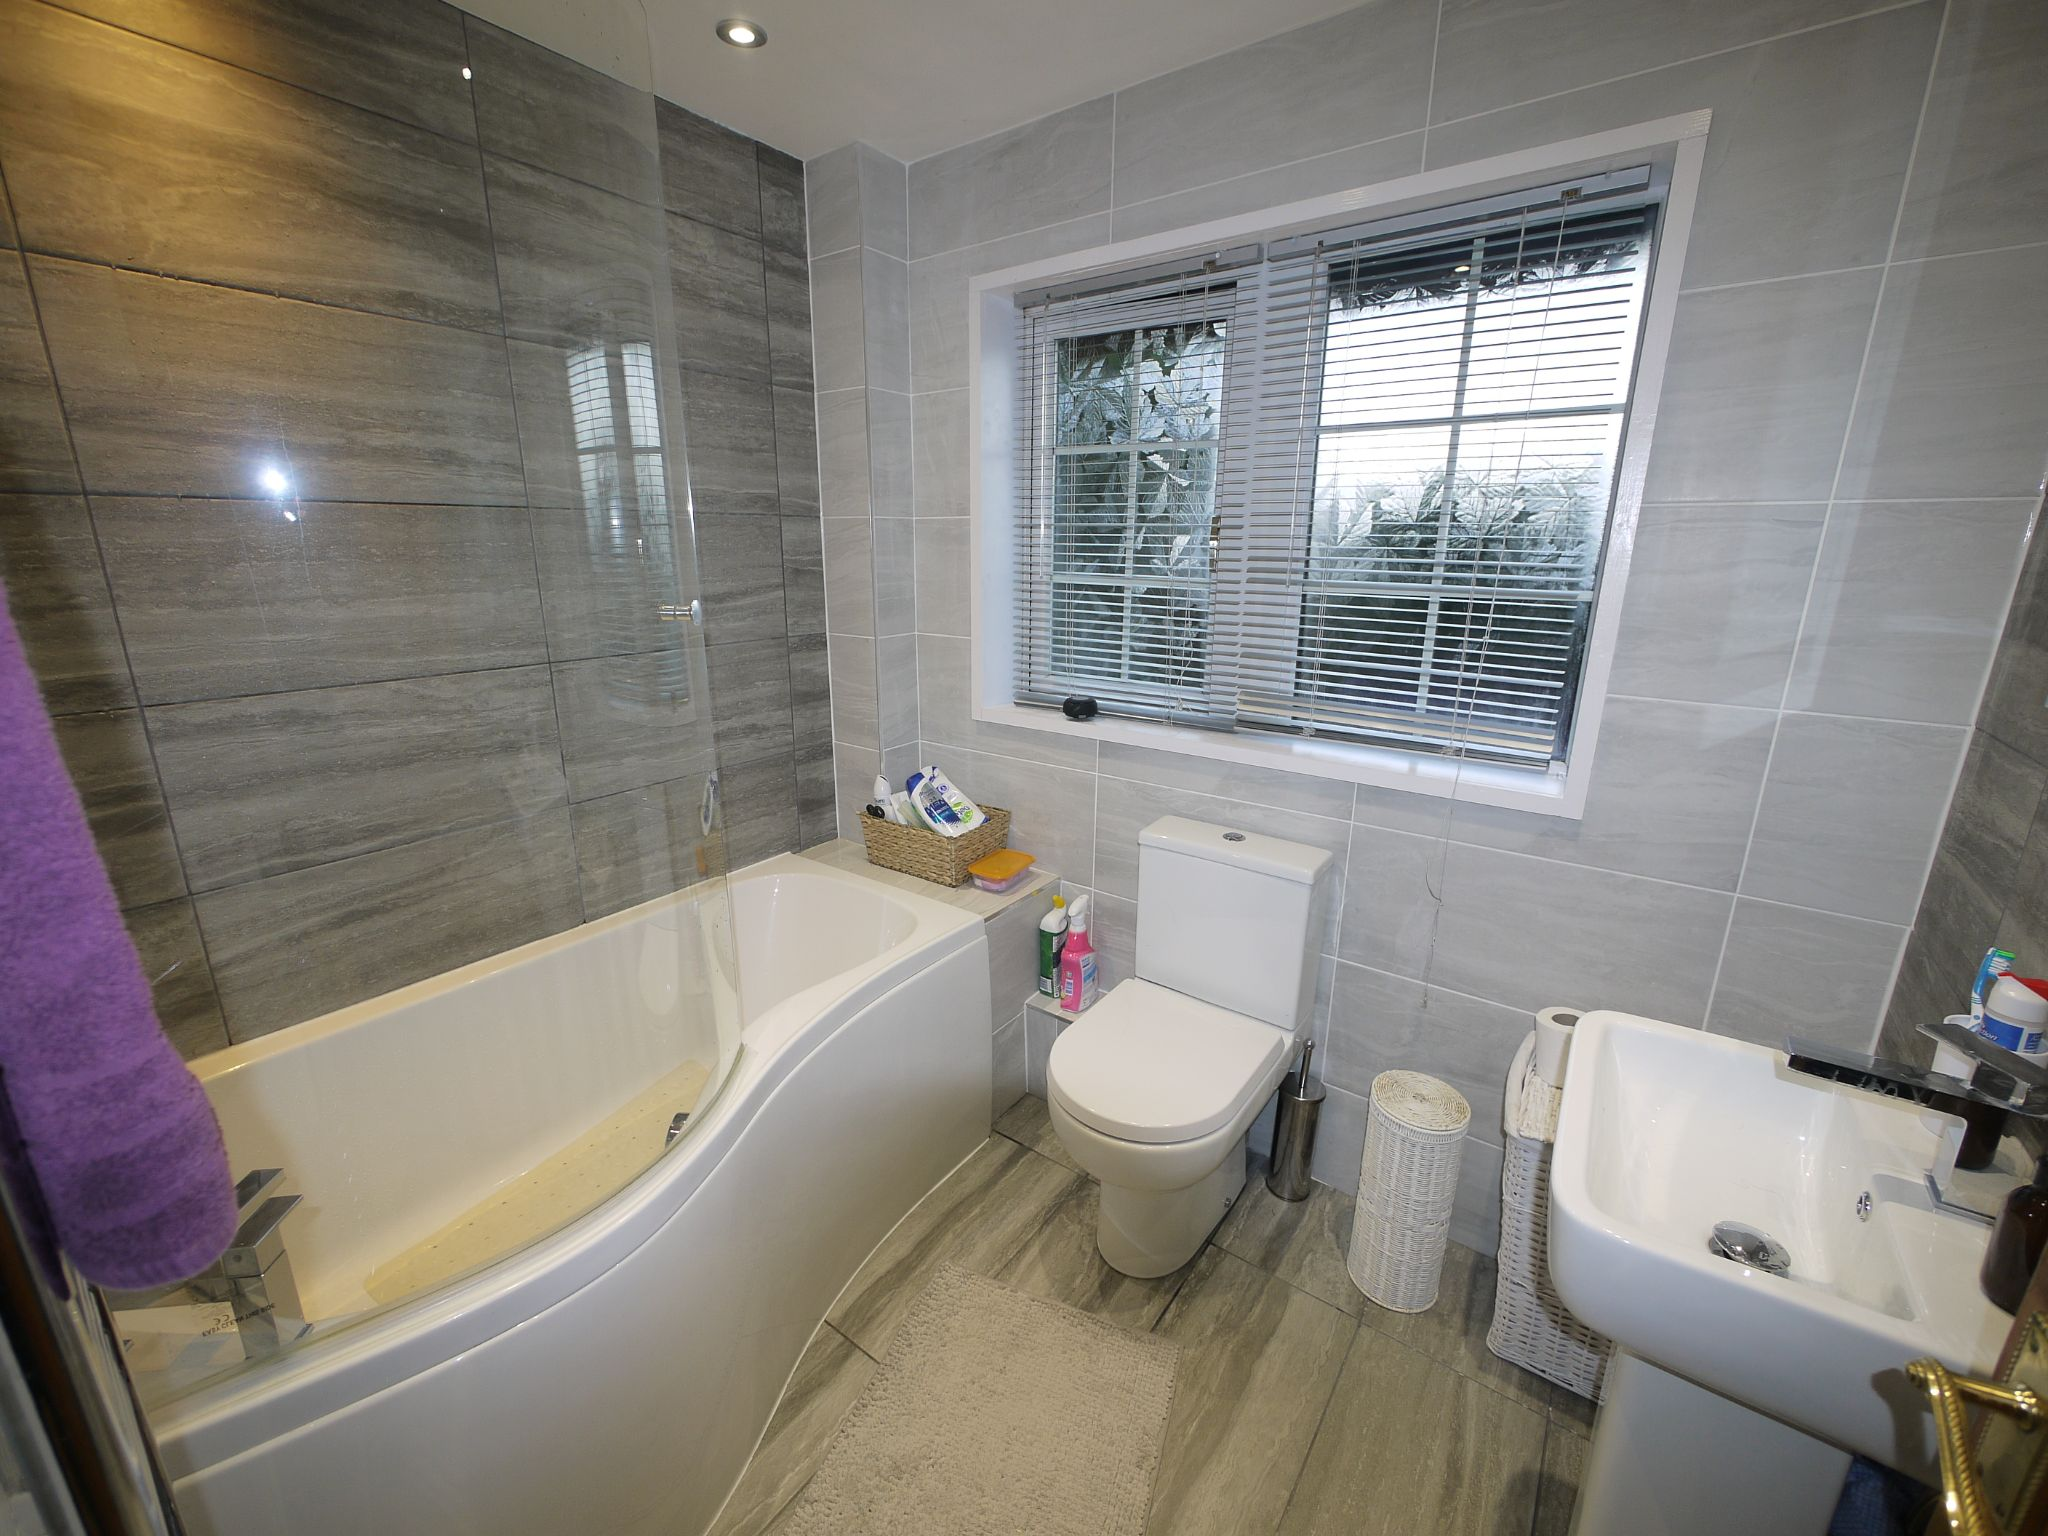 4 bedroom detached house For Sale in Brighouse - Photograph 7.